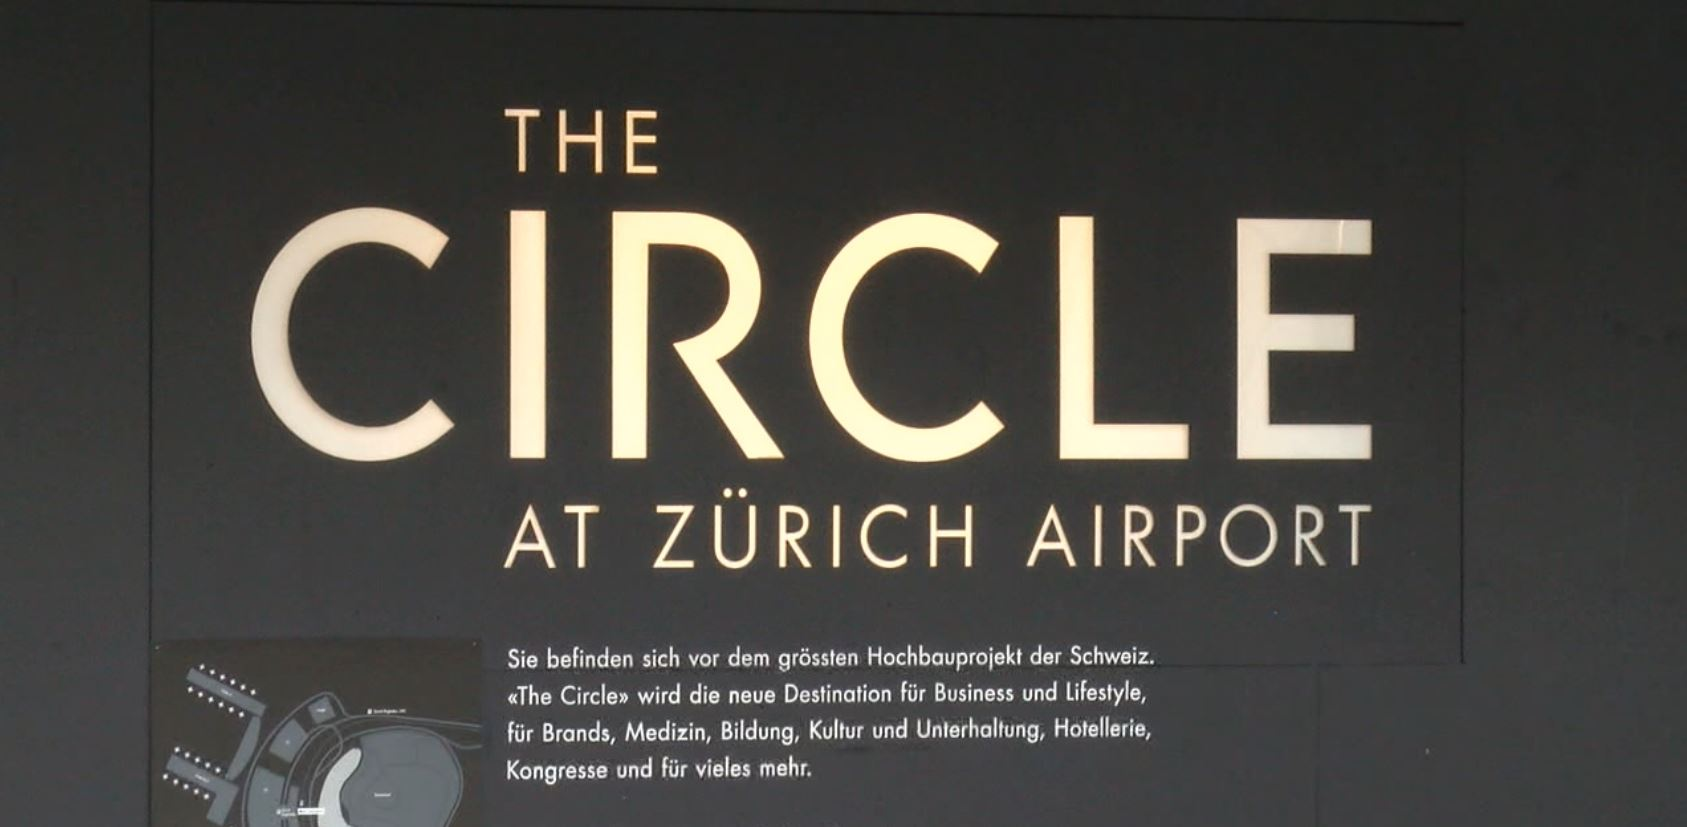 The_Circle_Airport_Zurich